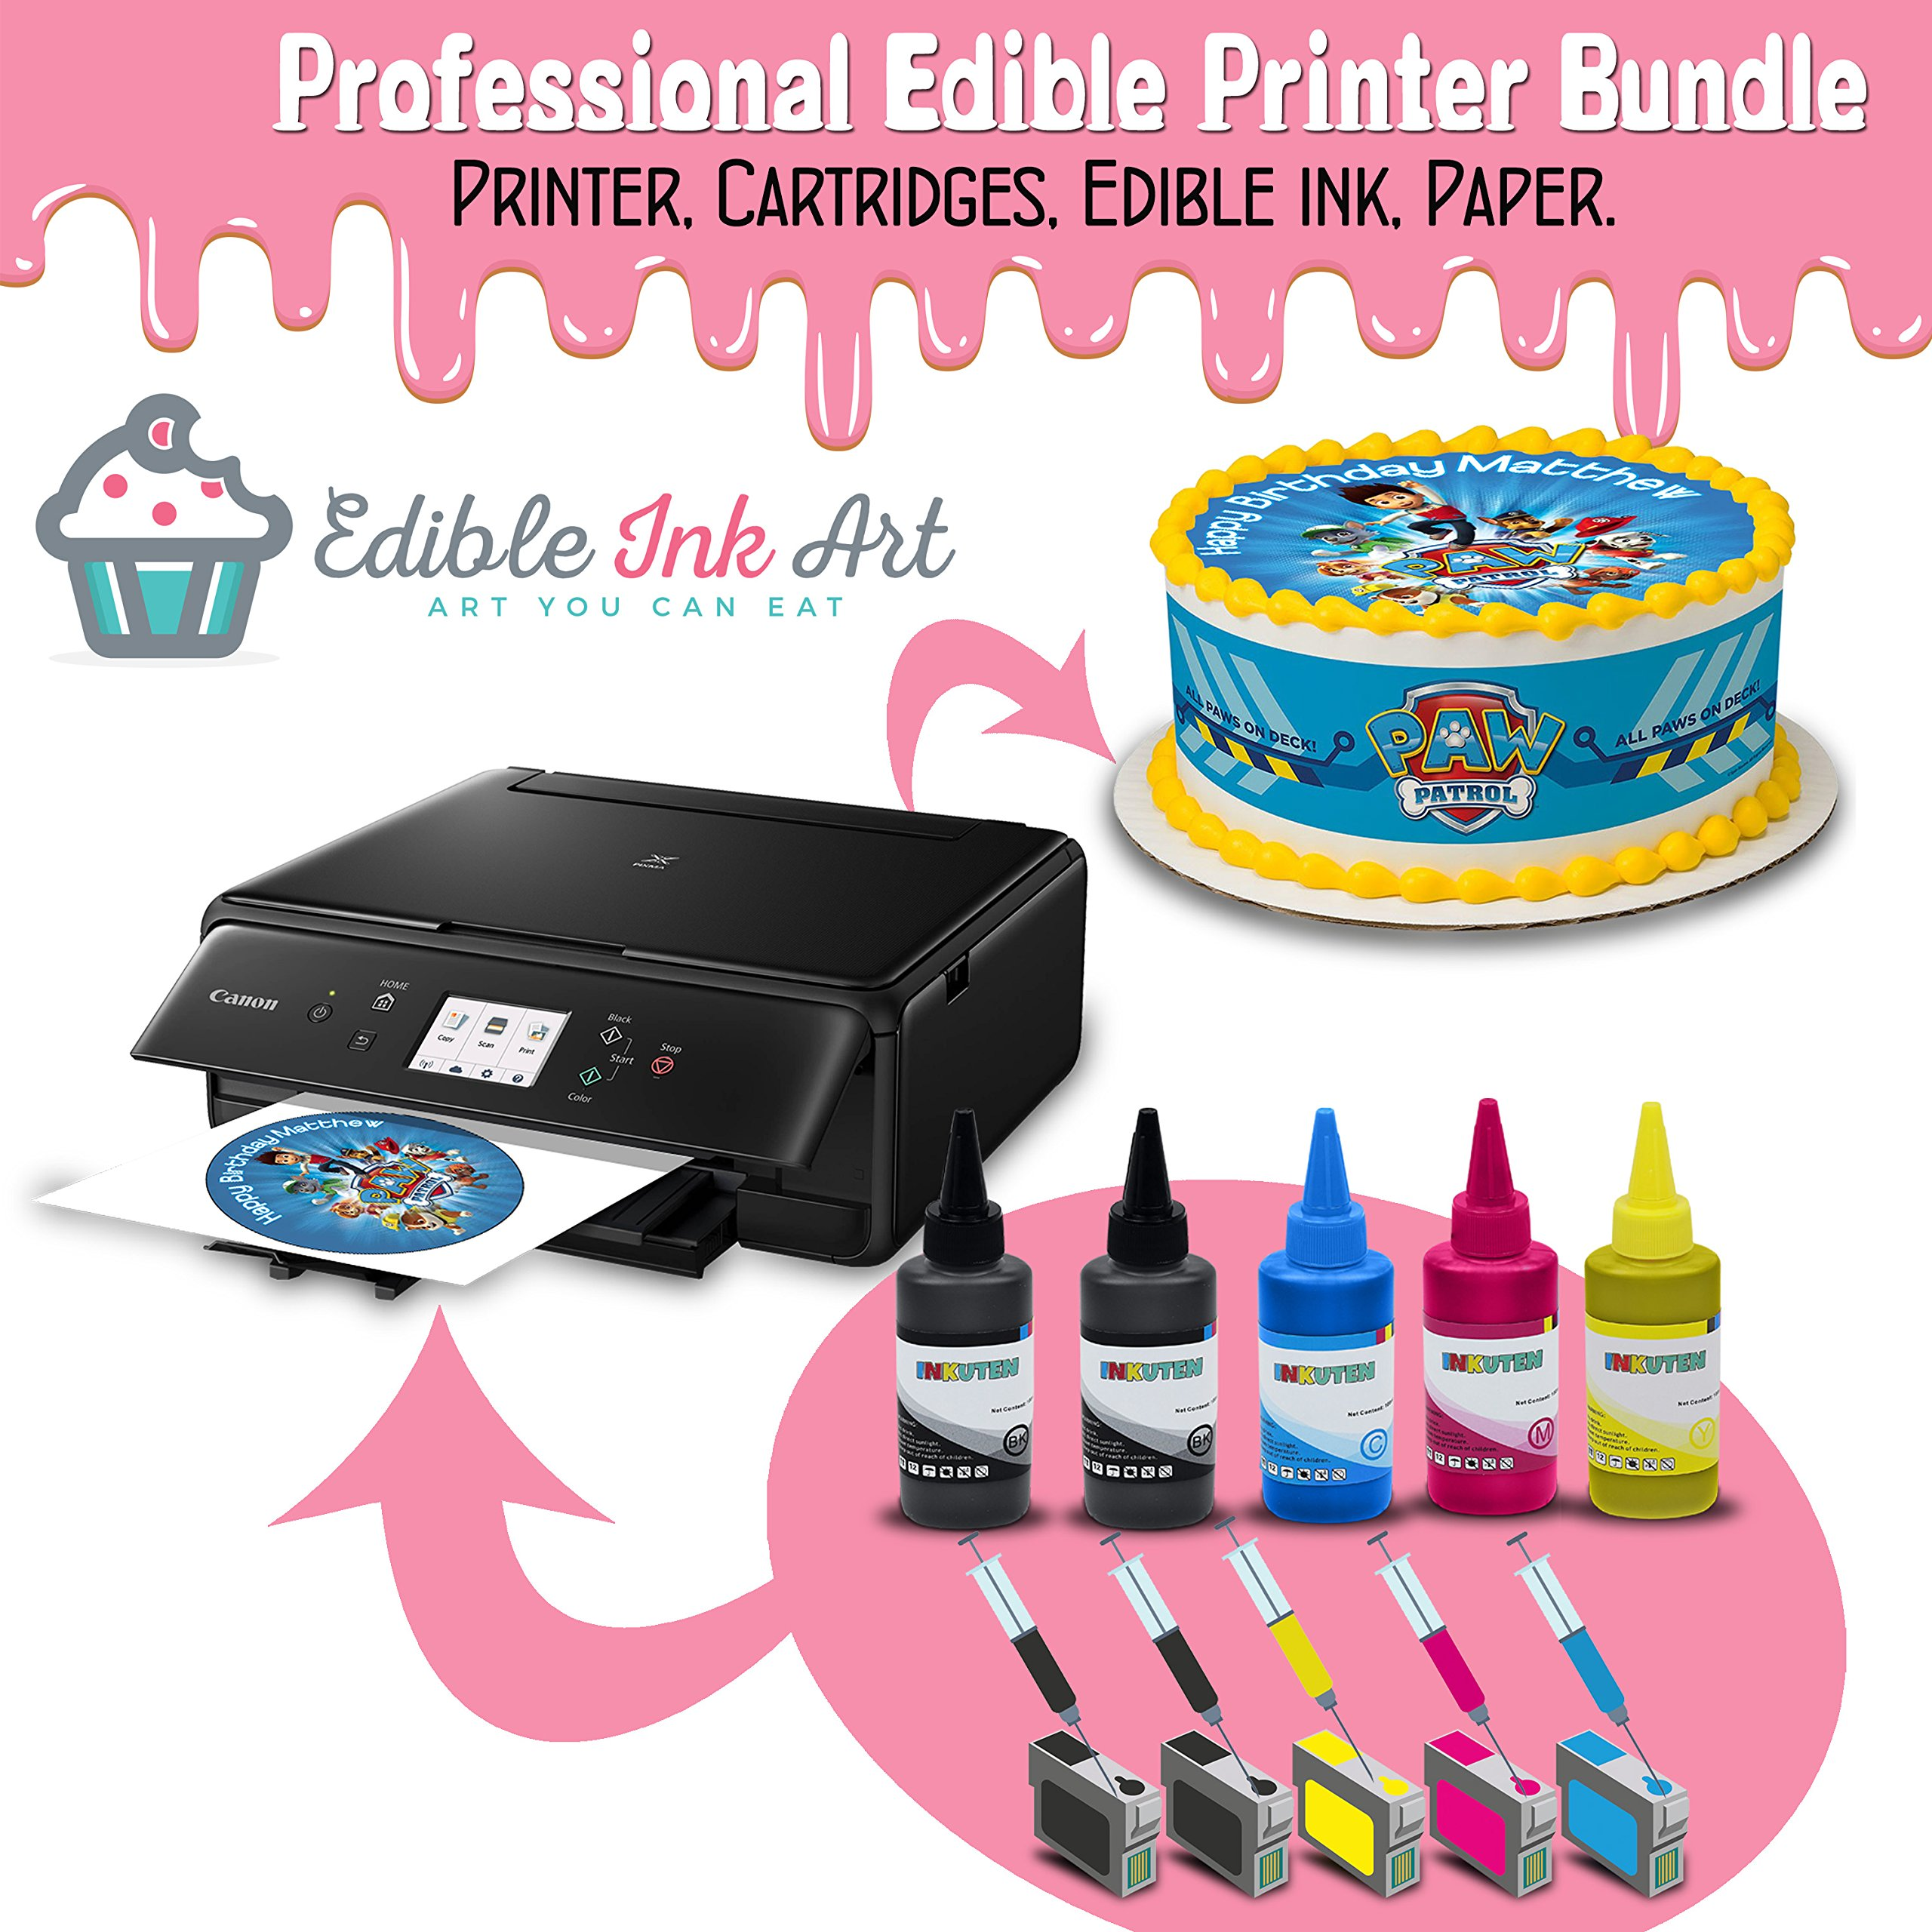 Edible Printer for cakes - Comes with Refillable Edible Ink Cartridges, 24 Premium Frosting Sheets and 500ml Edible Ink